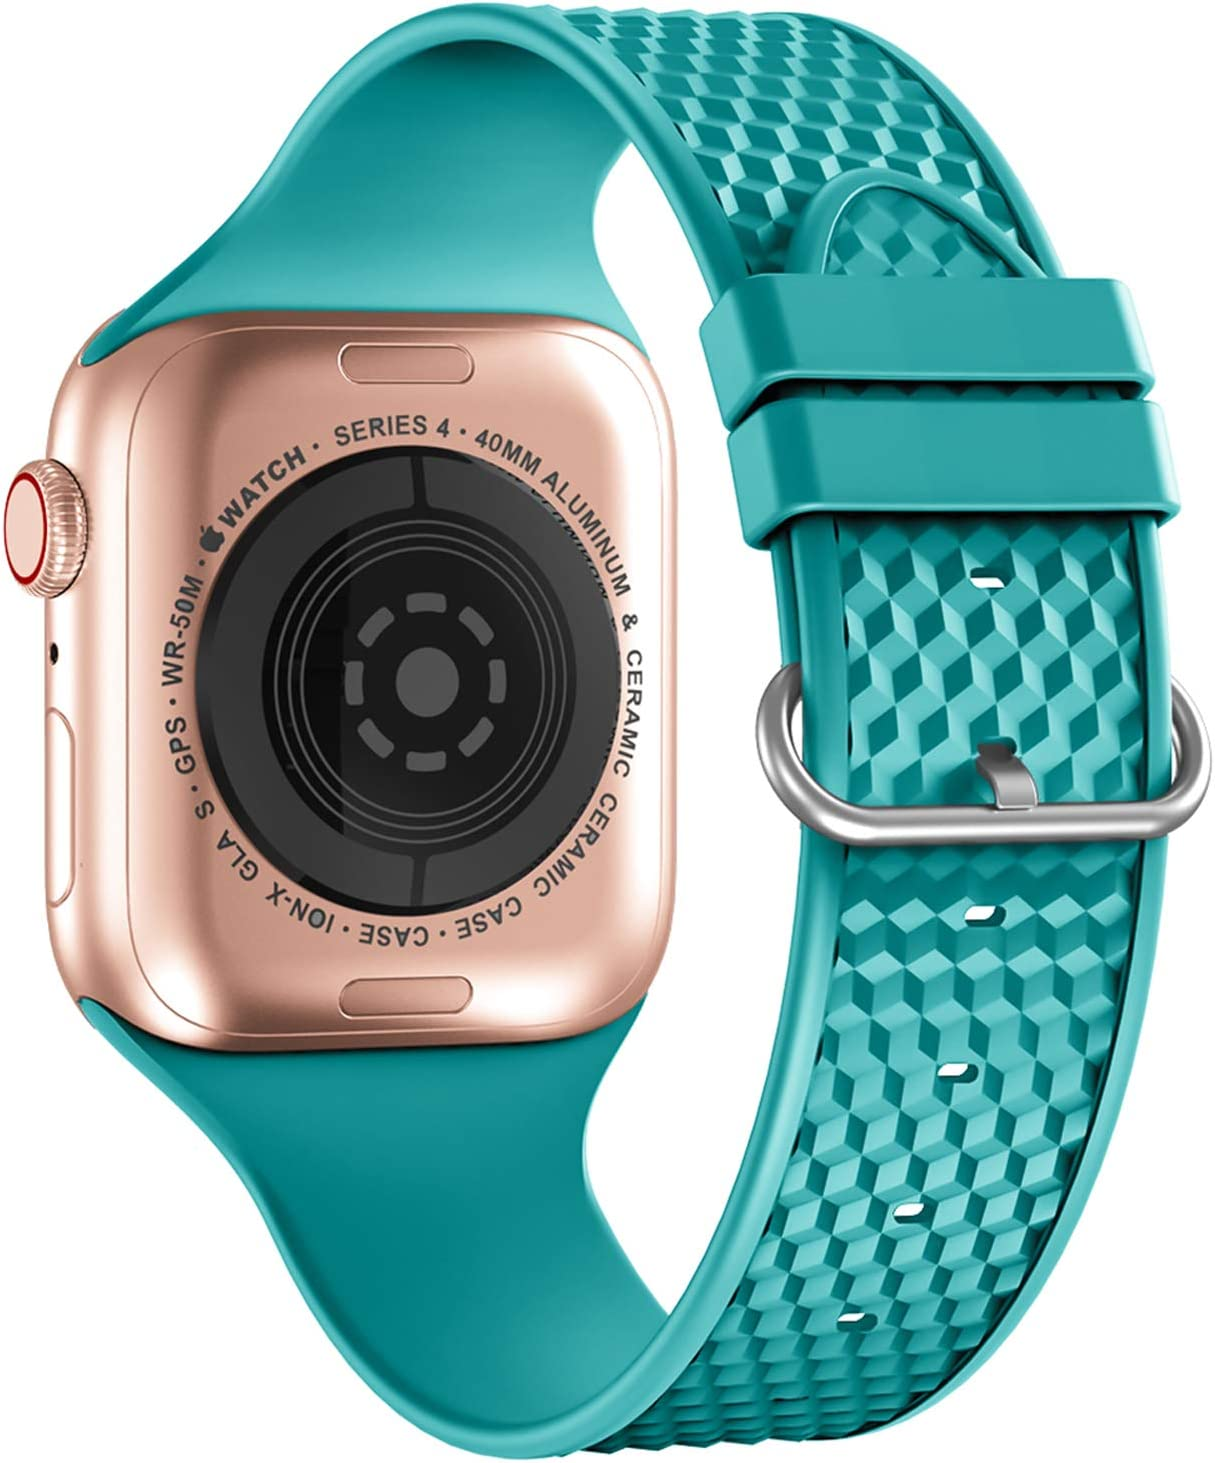 iWabcertoo Sport Bands Compatible with Apple Watch Band 38mm 40mm, Soft Silicone Replacement Band Wrist Strap Compatible for iWatch Series SE/6/5/4/3/2/1, Sport, Edition, Women Men (Teal)